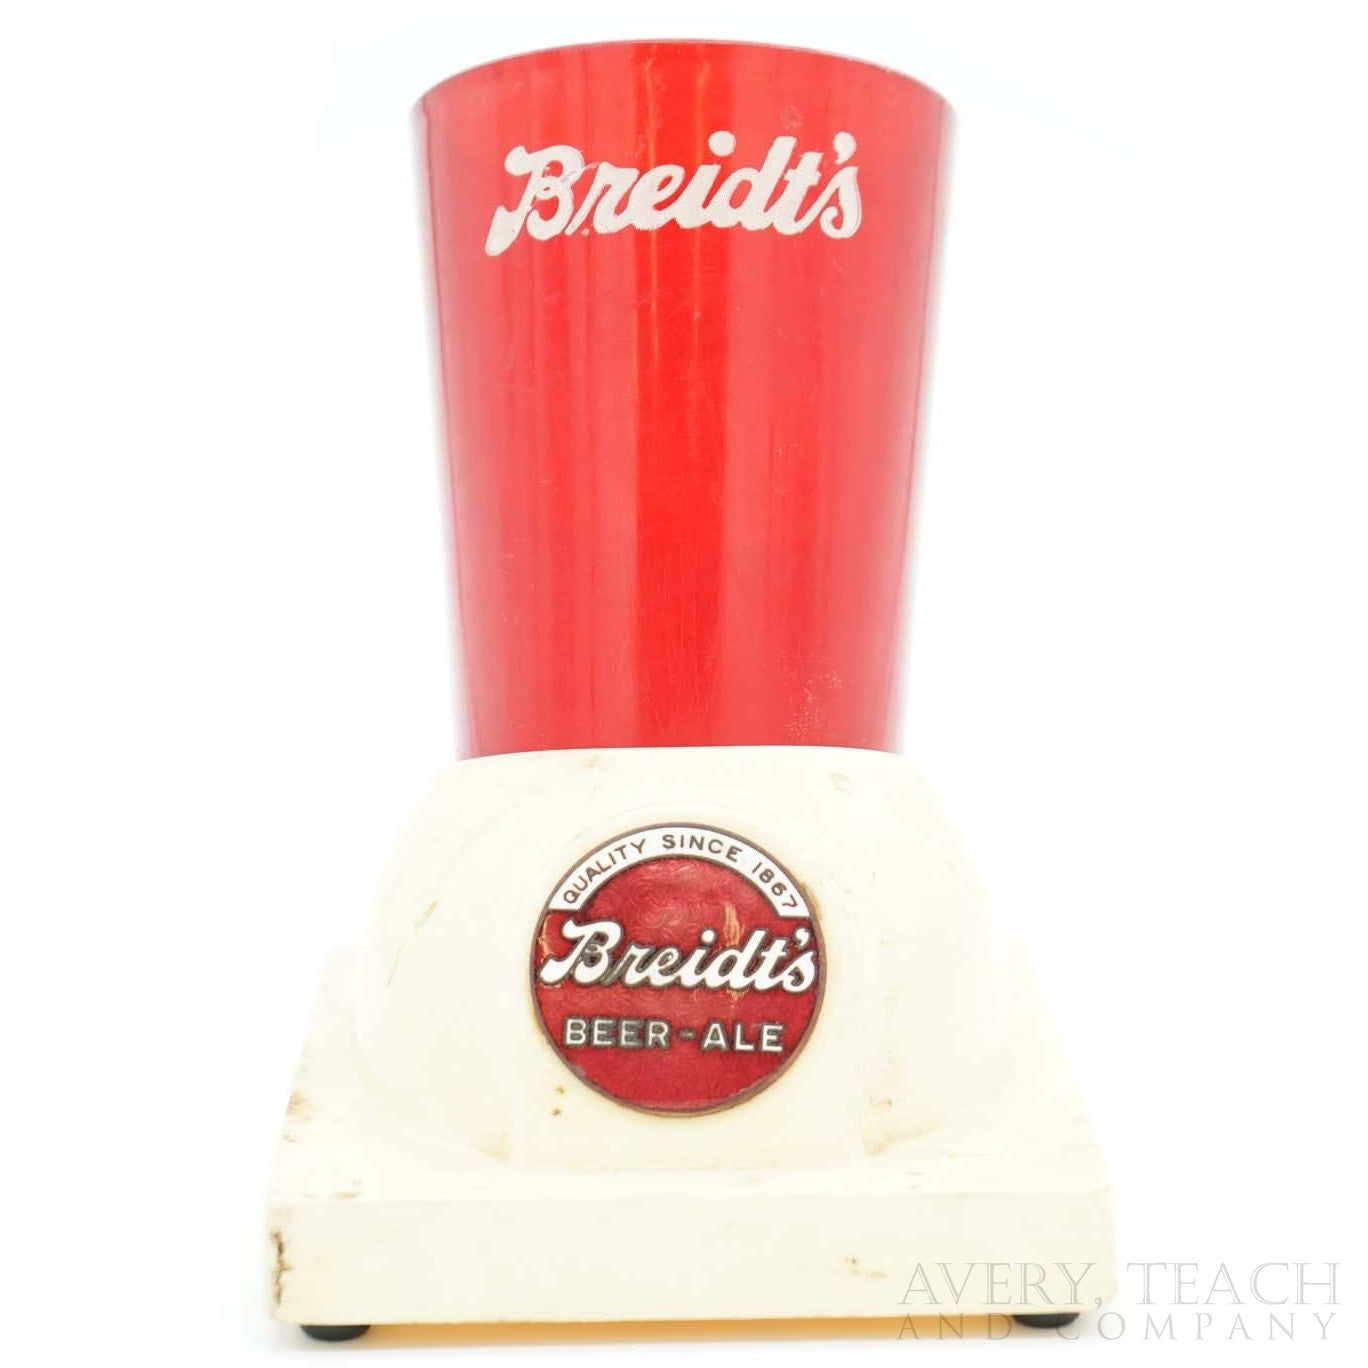 Vintage Breidt's Beer Ale holder - Avery, Teach and Co.